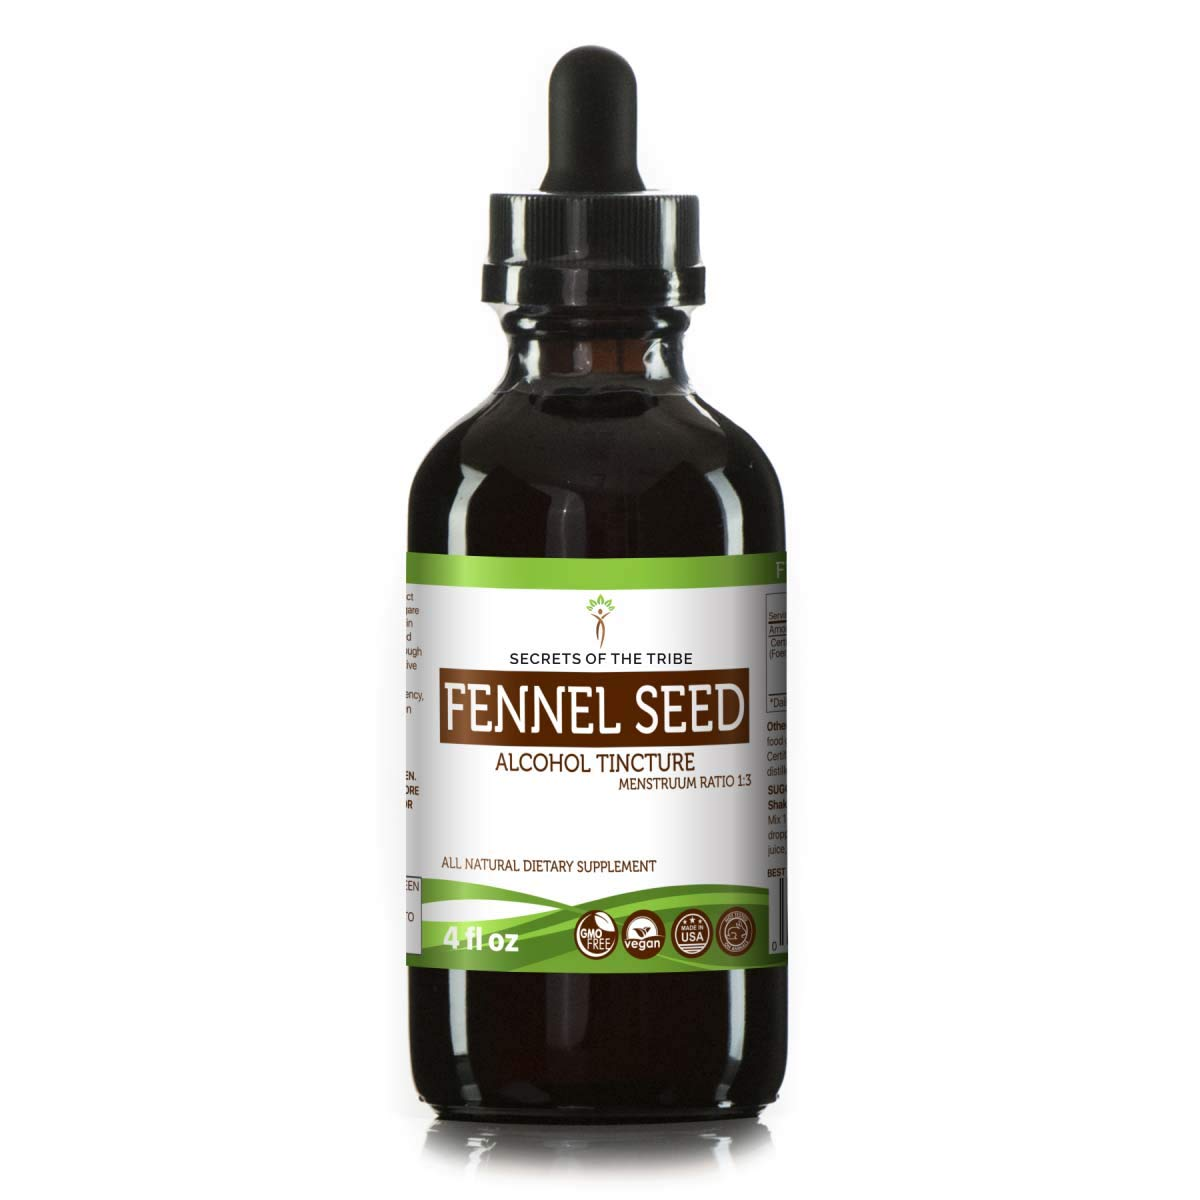 Fennel Seed Tincture Alcohol Extract, Organic Fennel (Foeniculum vulgare) Dried Seed Tincture Supplement (4 FL OZ)